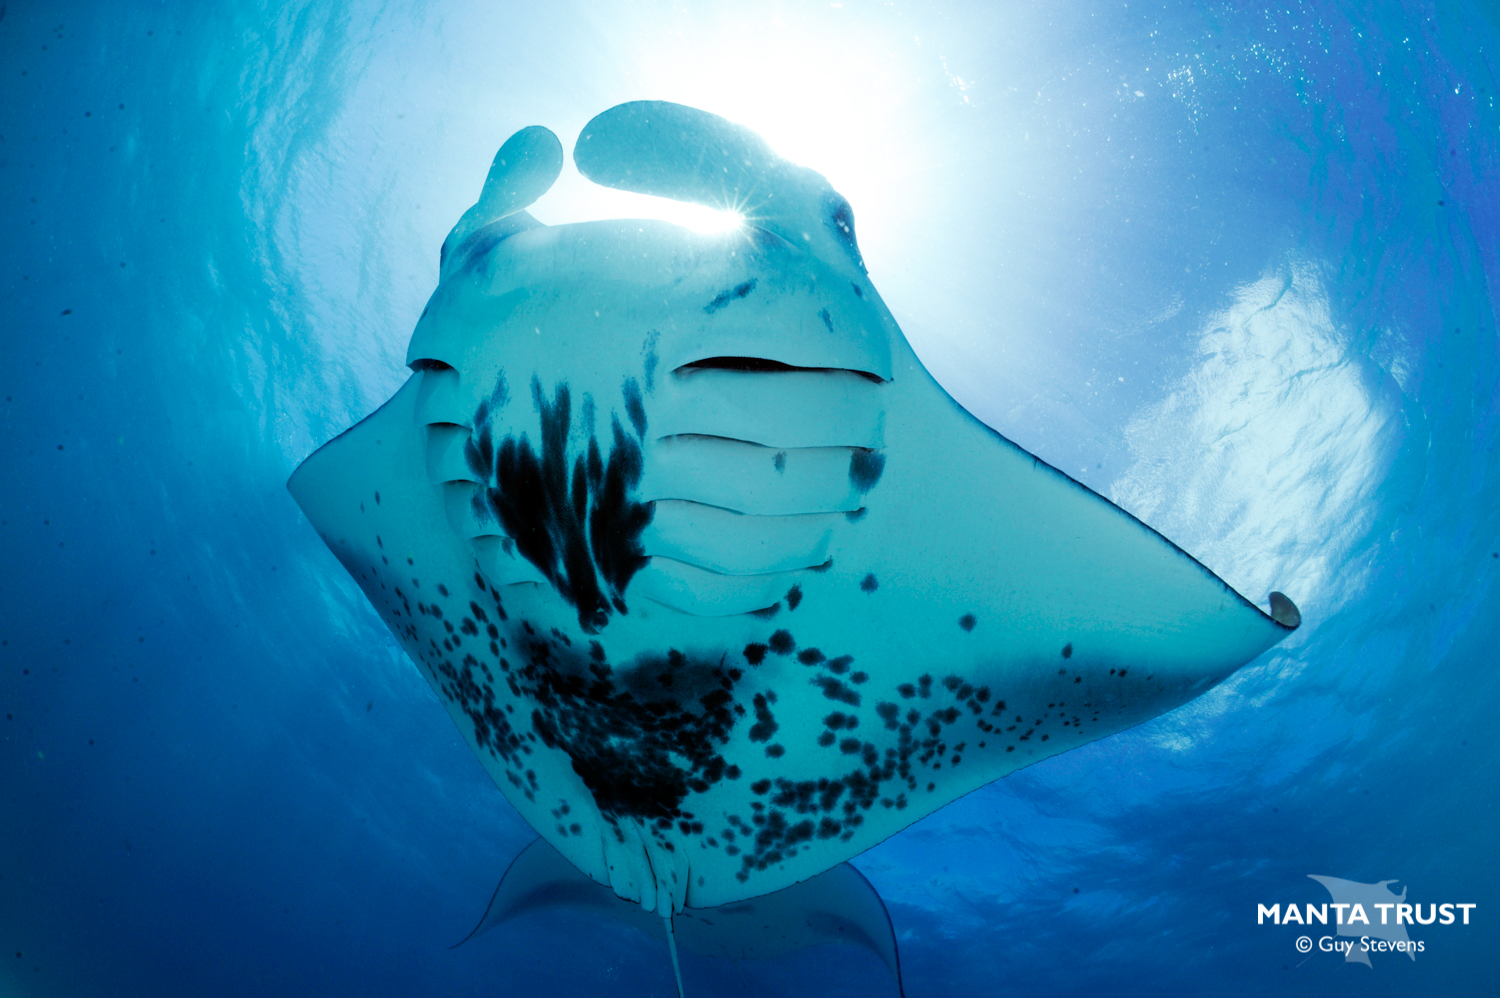 Manta rays are filter feeders, and can ingest micro plastics. Photo: Guy Stevens - Manta Trust